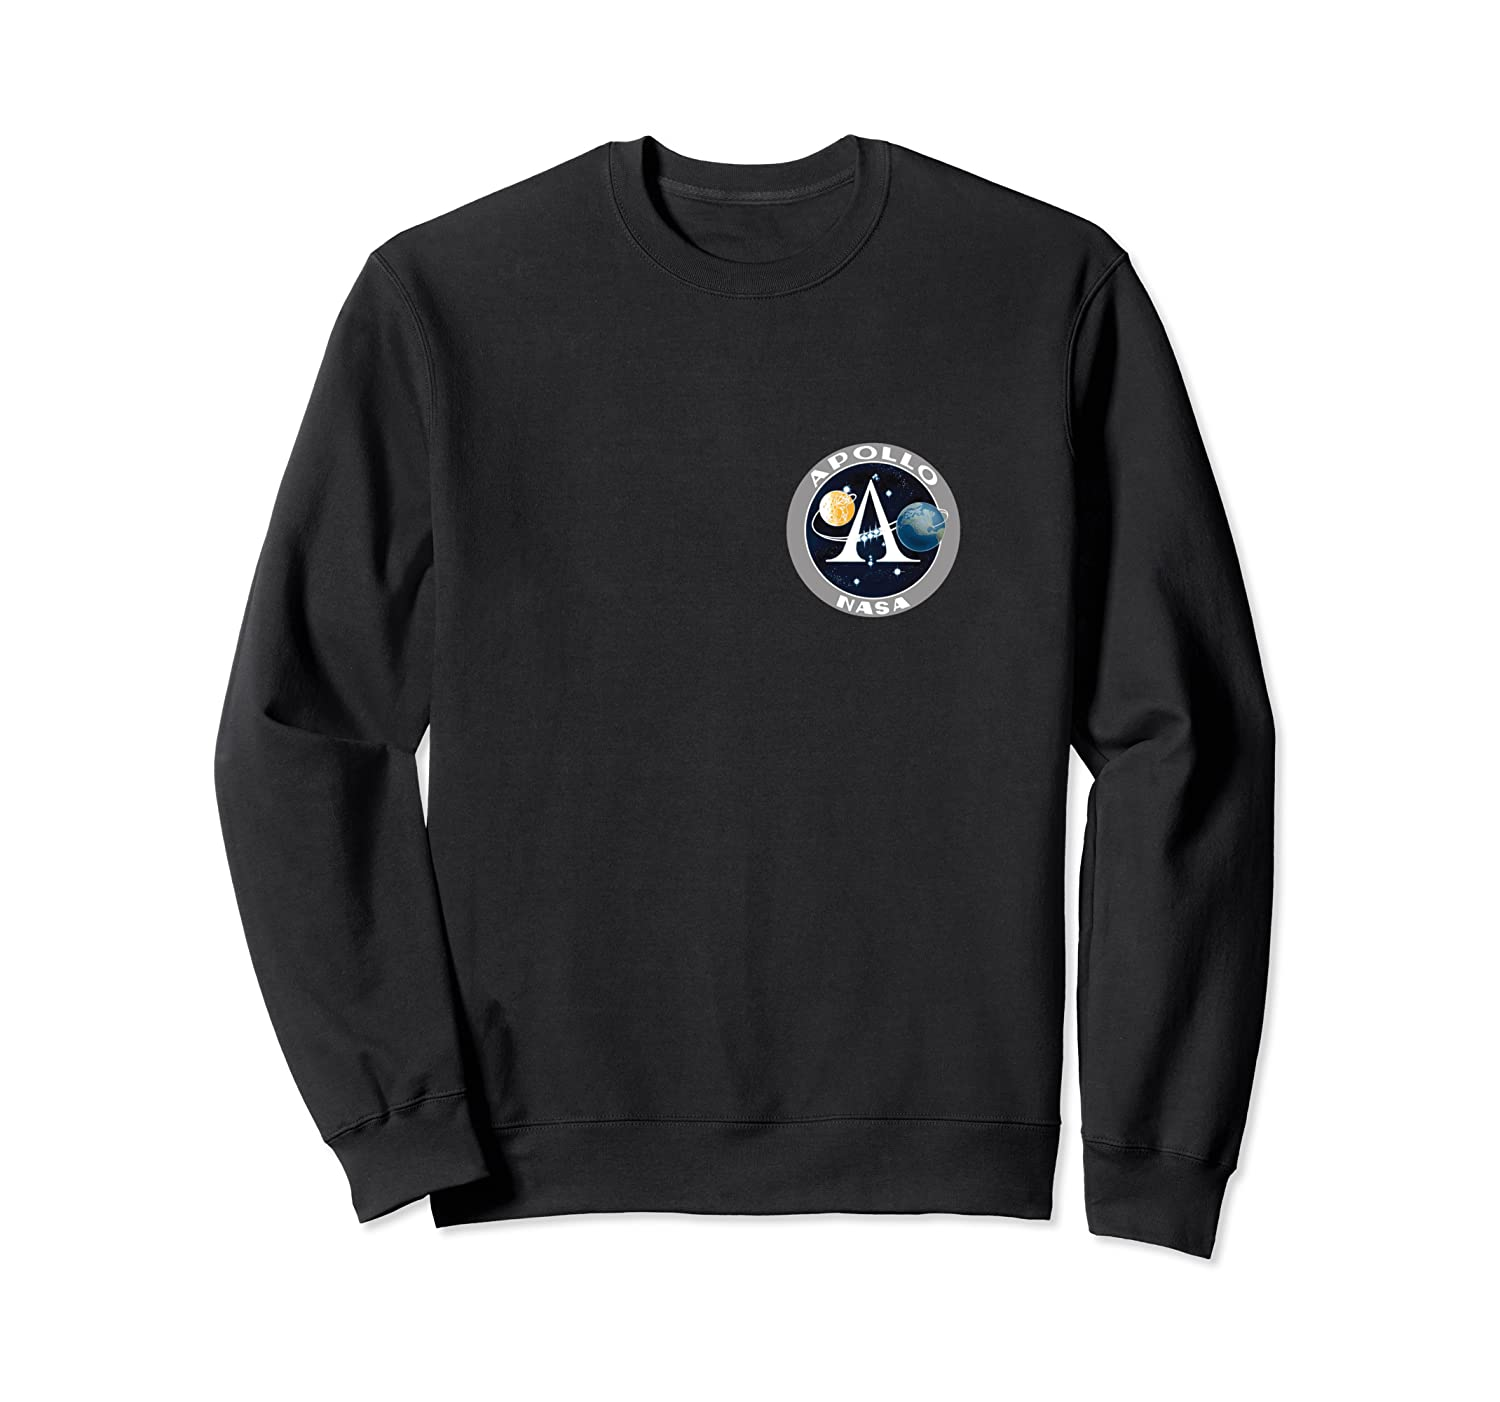 Apollo 11 Space Moon Landing Mission Patch Shirts Crewneck Sweater